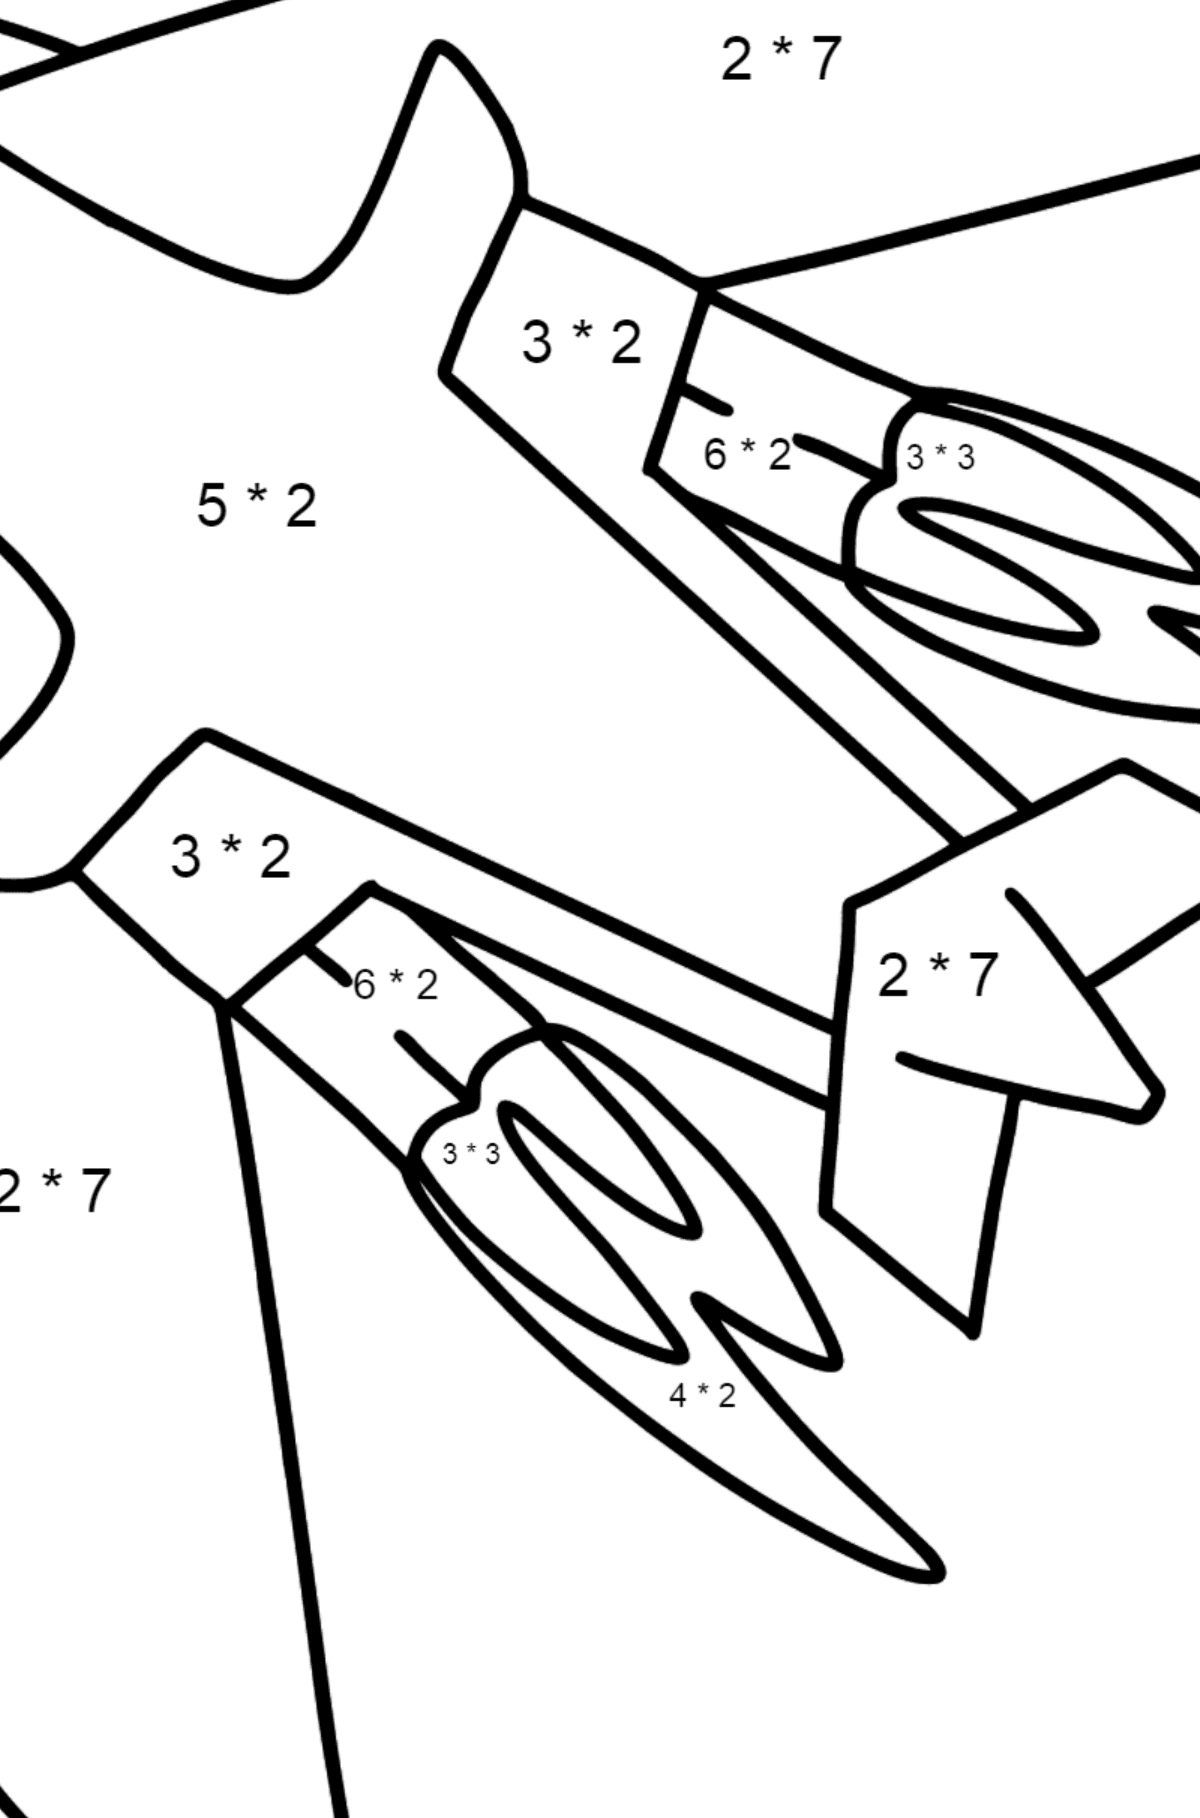 Airplane Tu-160 (White Swan) coloring page - Math Coloring - Multiplication for Kids